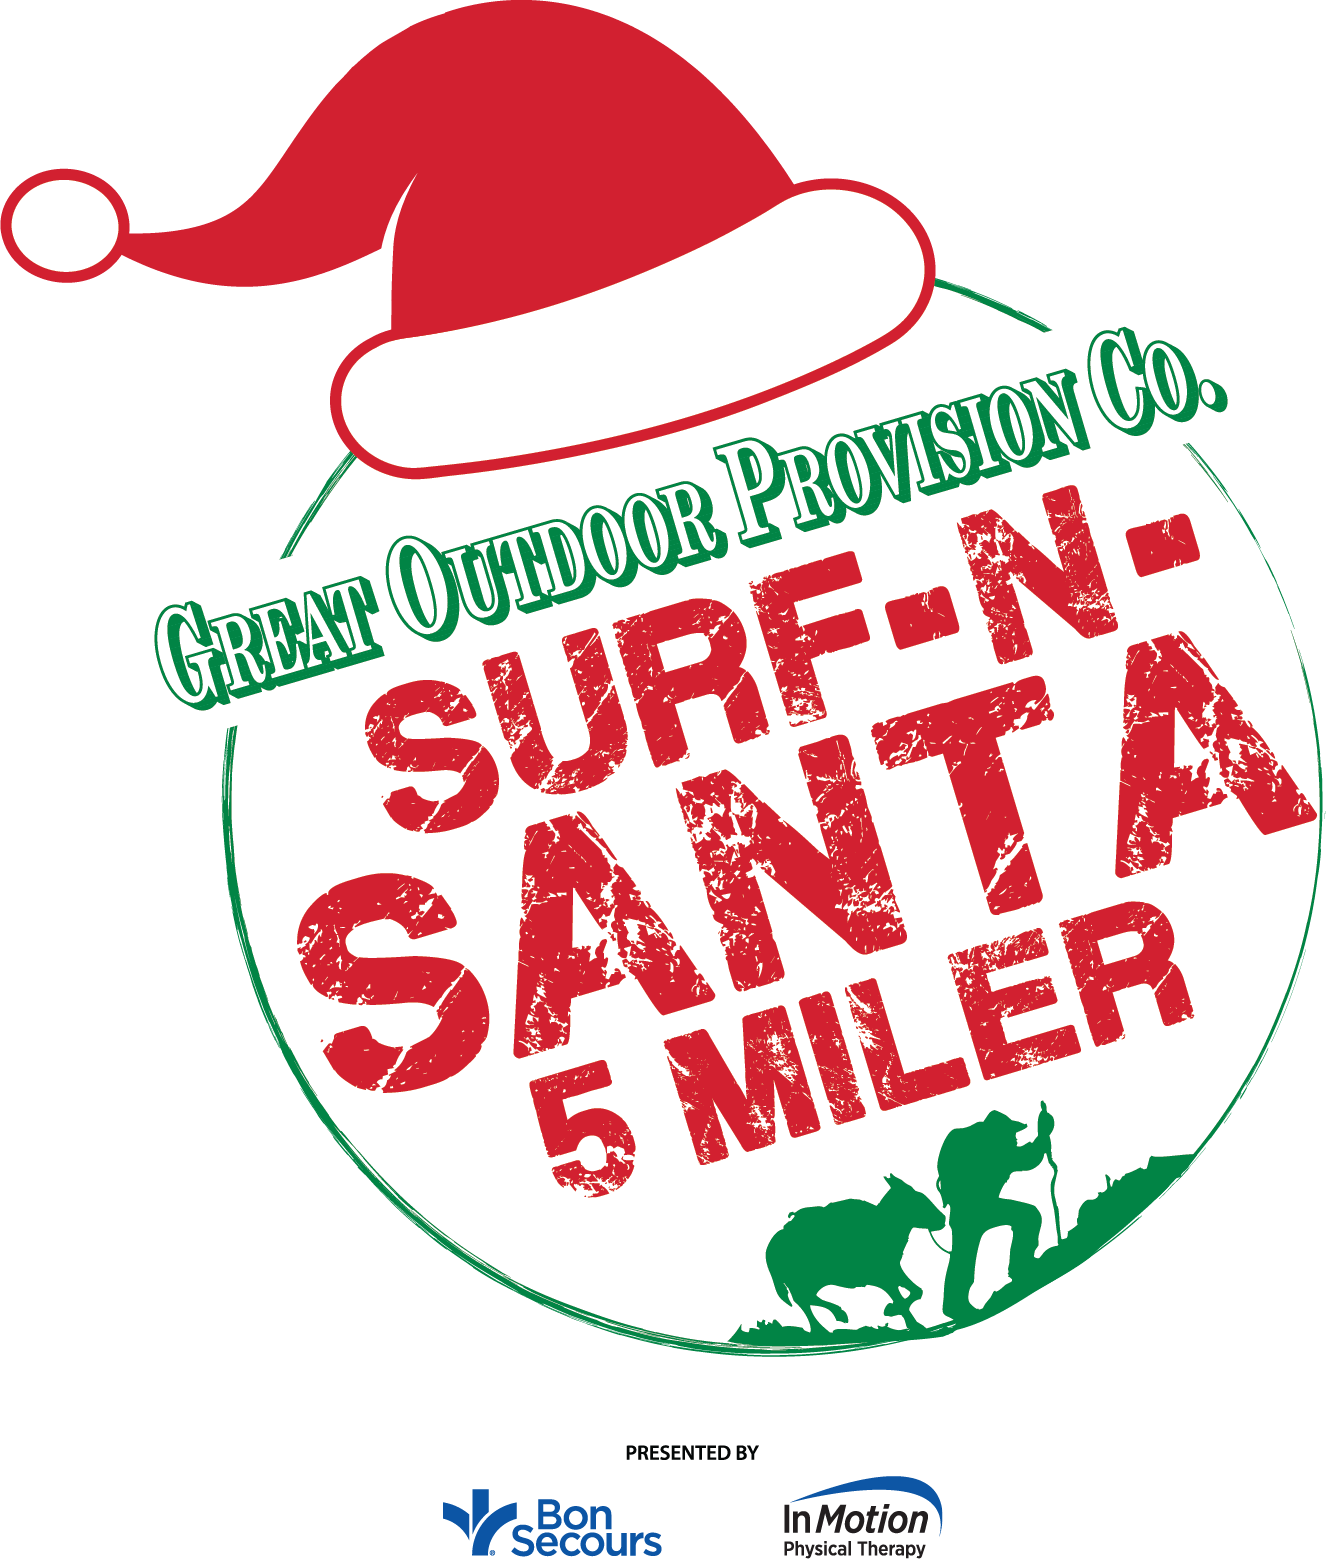 2018 Great Outdoor Provision Co. Surf-n-Santa 5 Miler